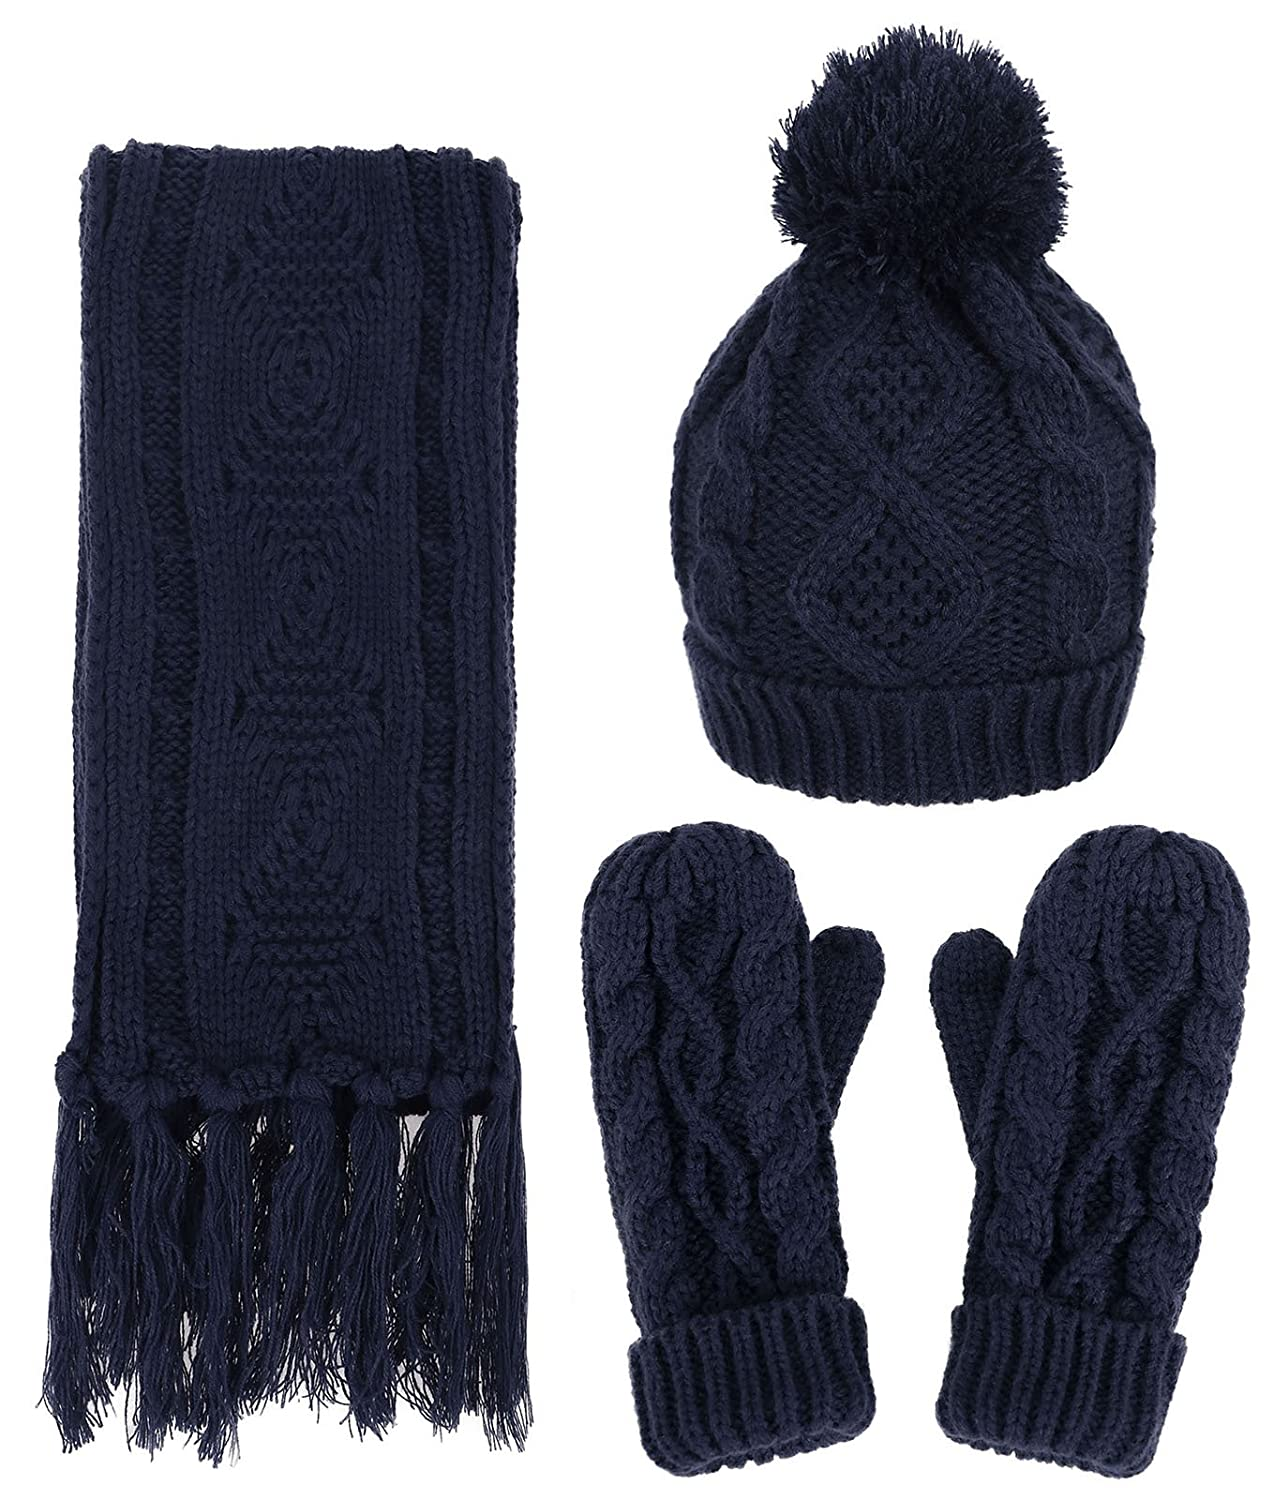 Adults Winter Set Solid Color Thick Cable Knitted Hat Scarf & Gloves Set, Beige Younglove B16070038-02